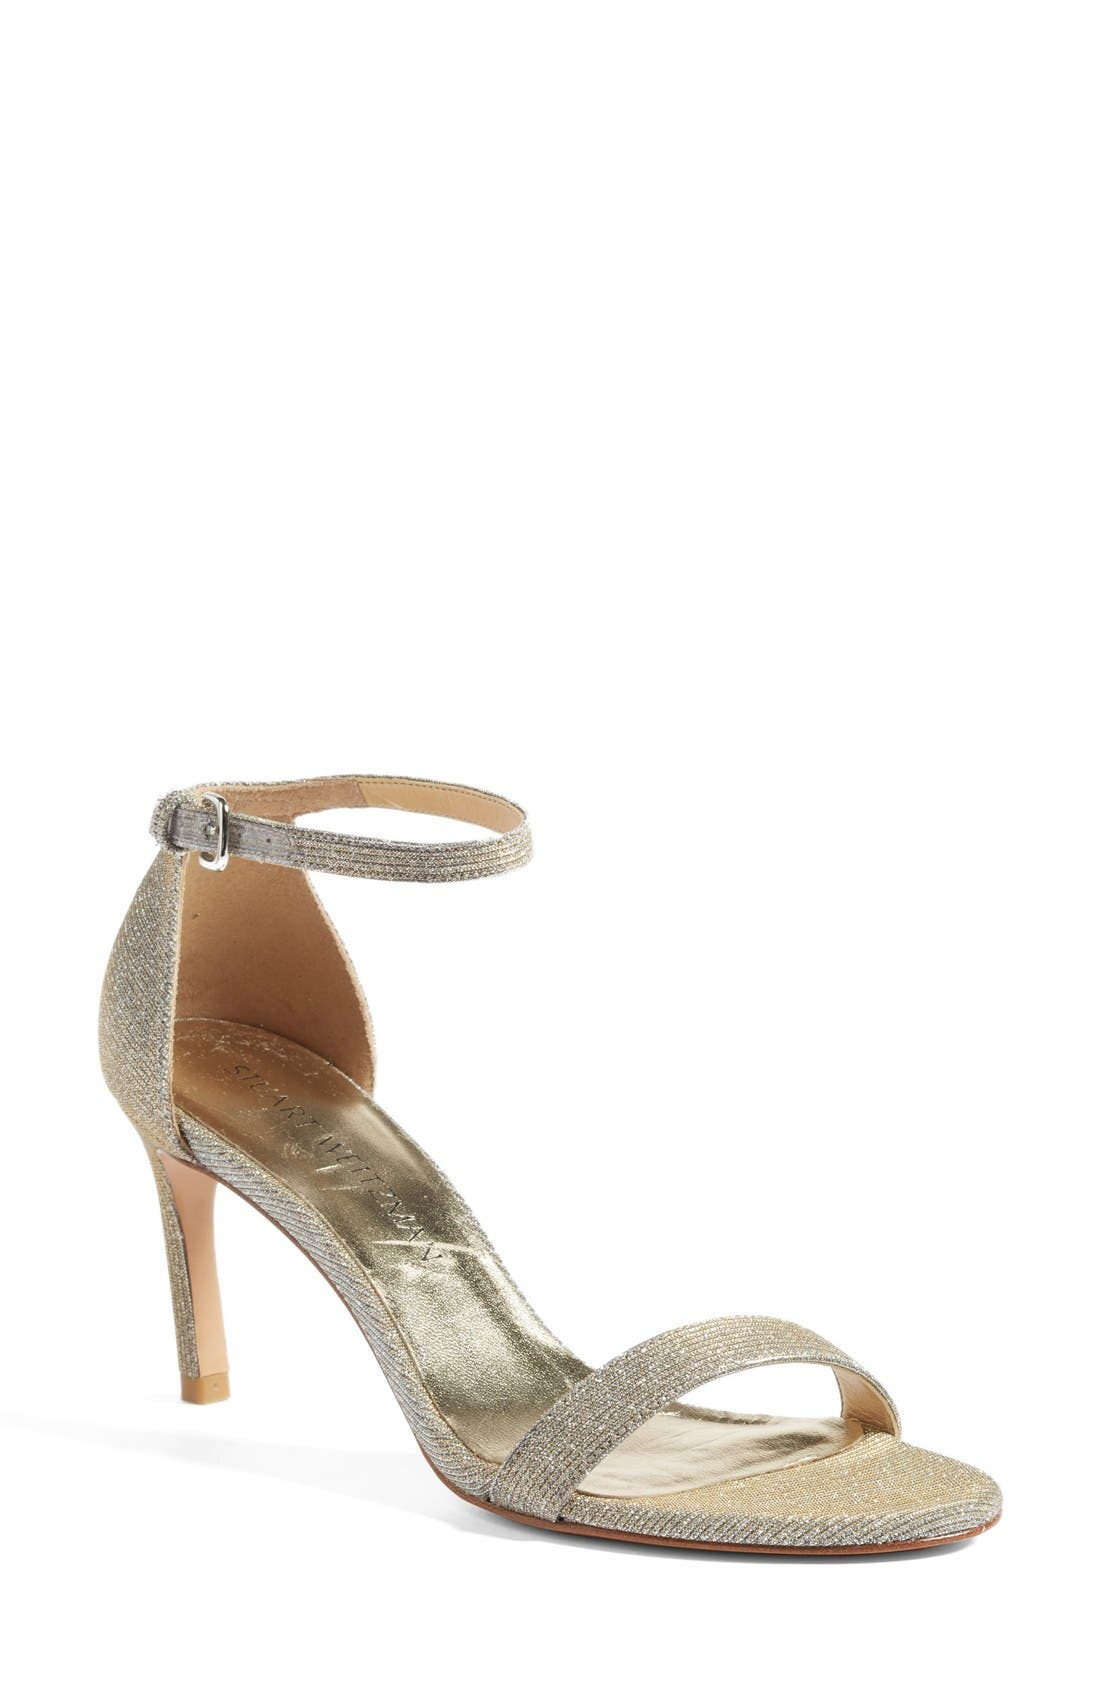 'Nunaked' Leather Ankle Strap Sandal,                         Main,                         color, Magnesium Nocturn